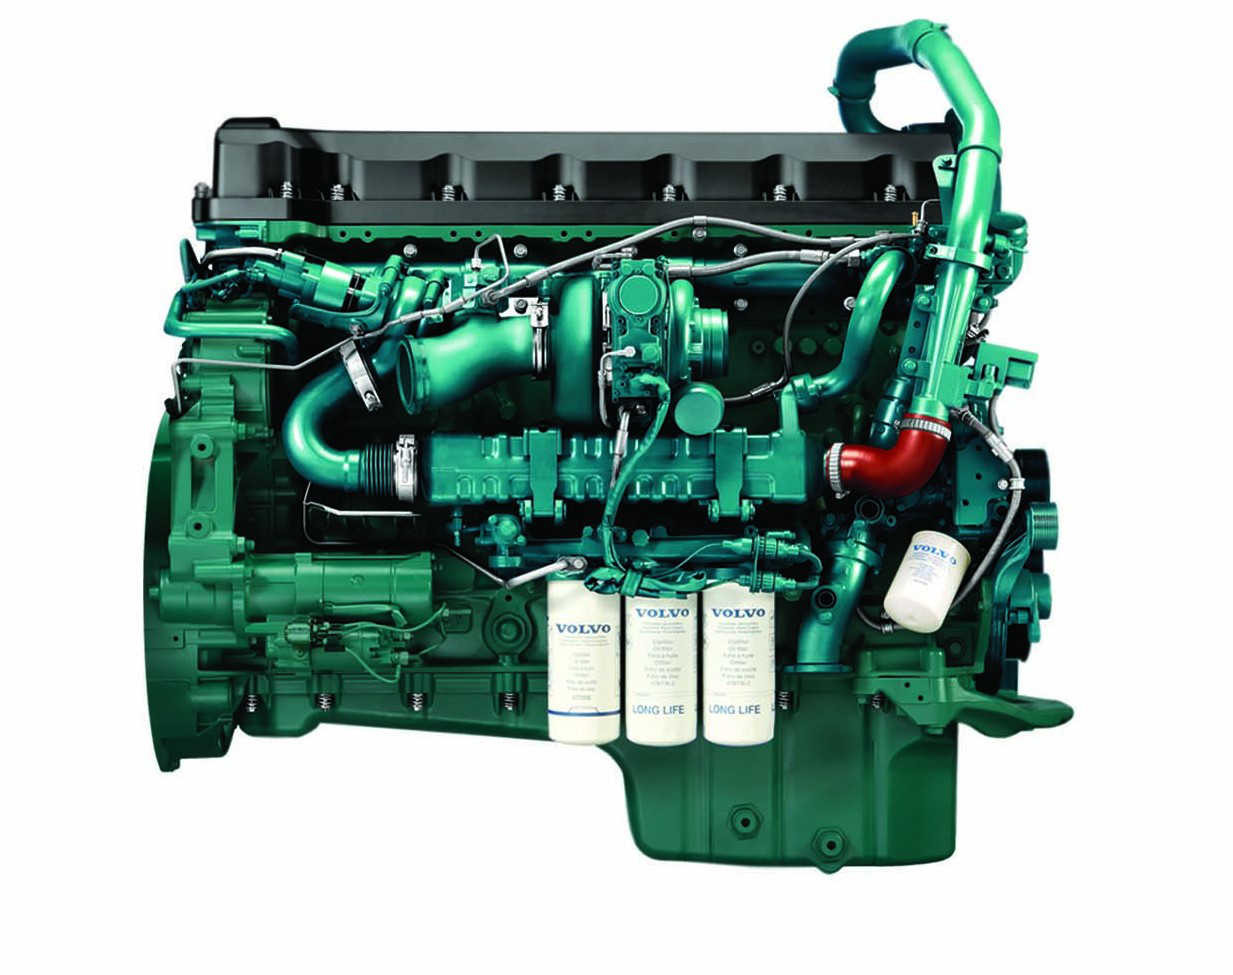 Paccar Engine Diagram Dodge Engines Wiring Diagram ODICIS